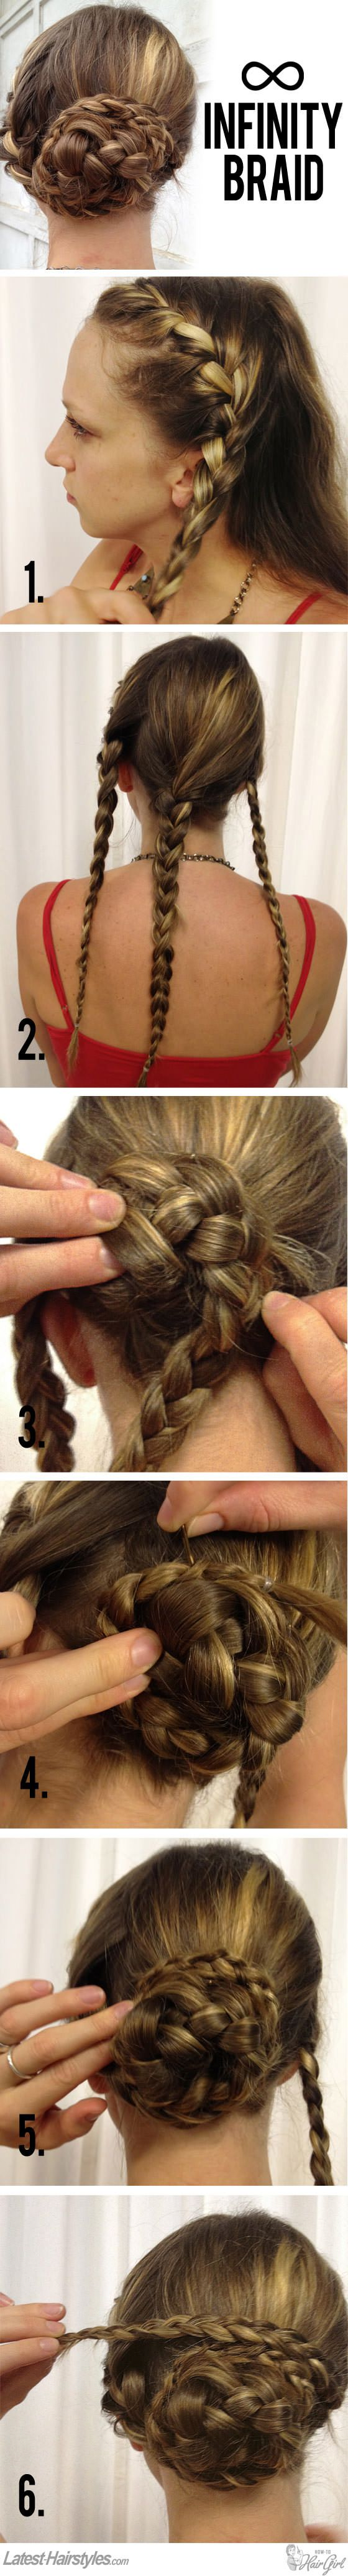 How-to: Infinity Braid Bun. With both visual and written steps.